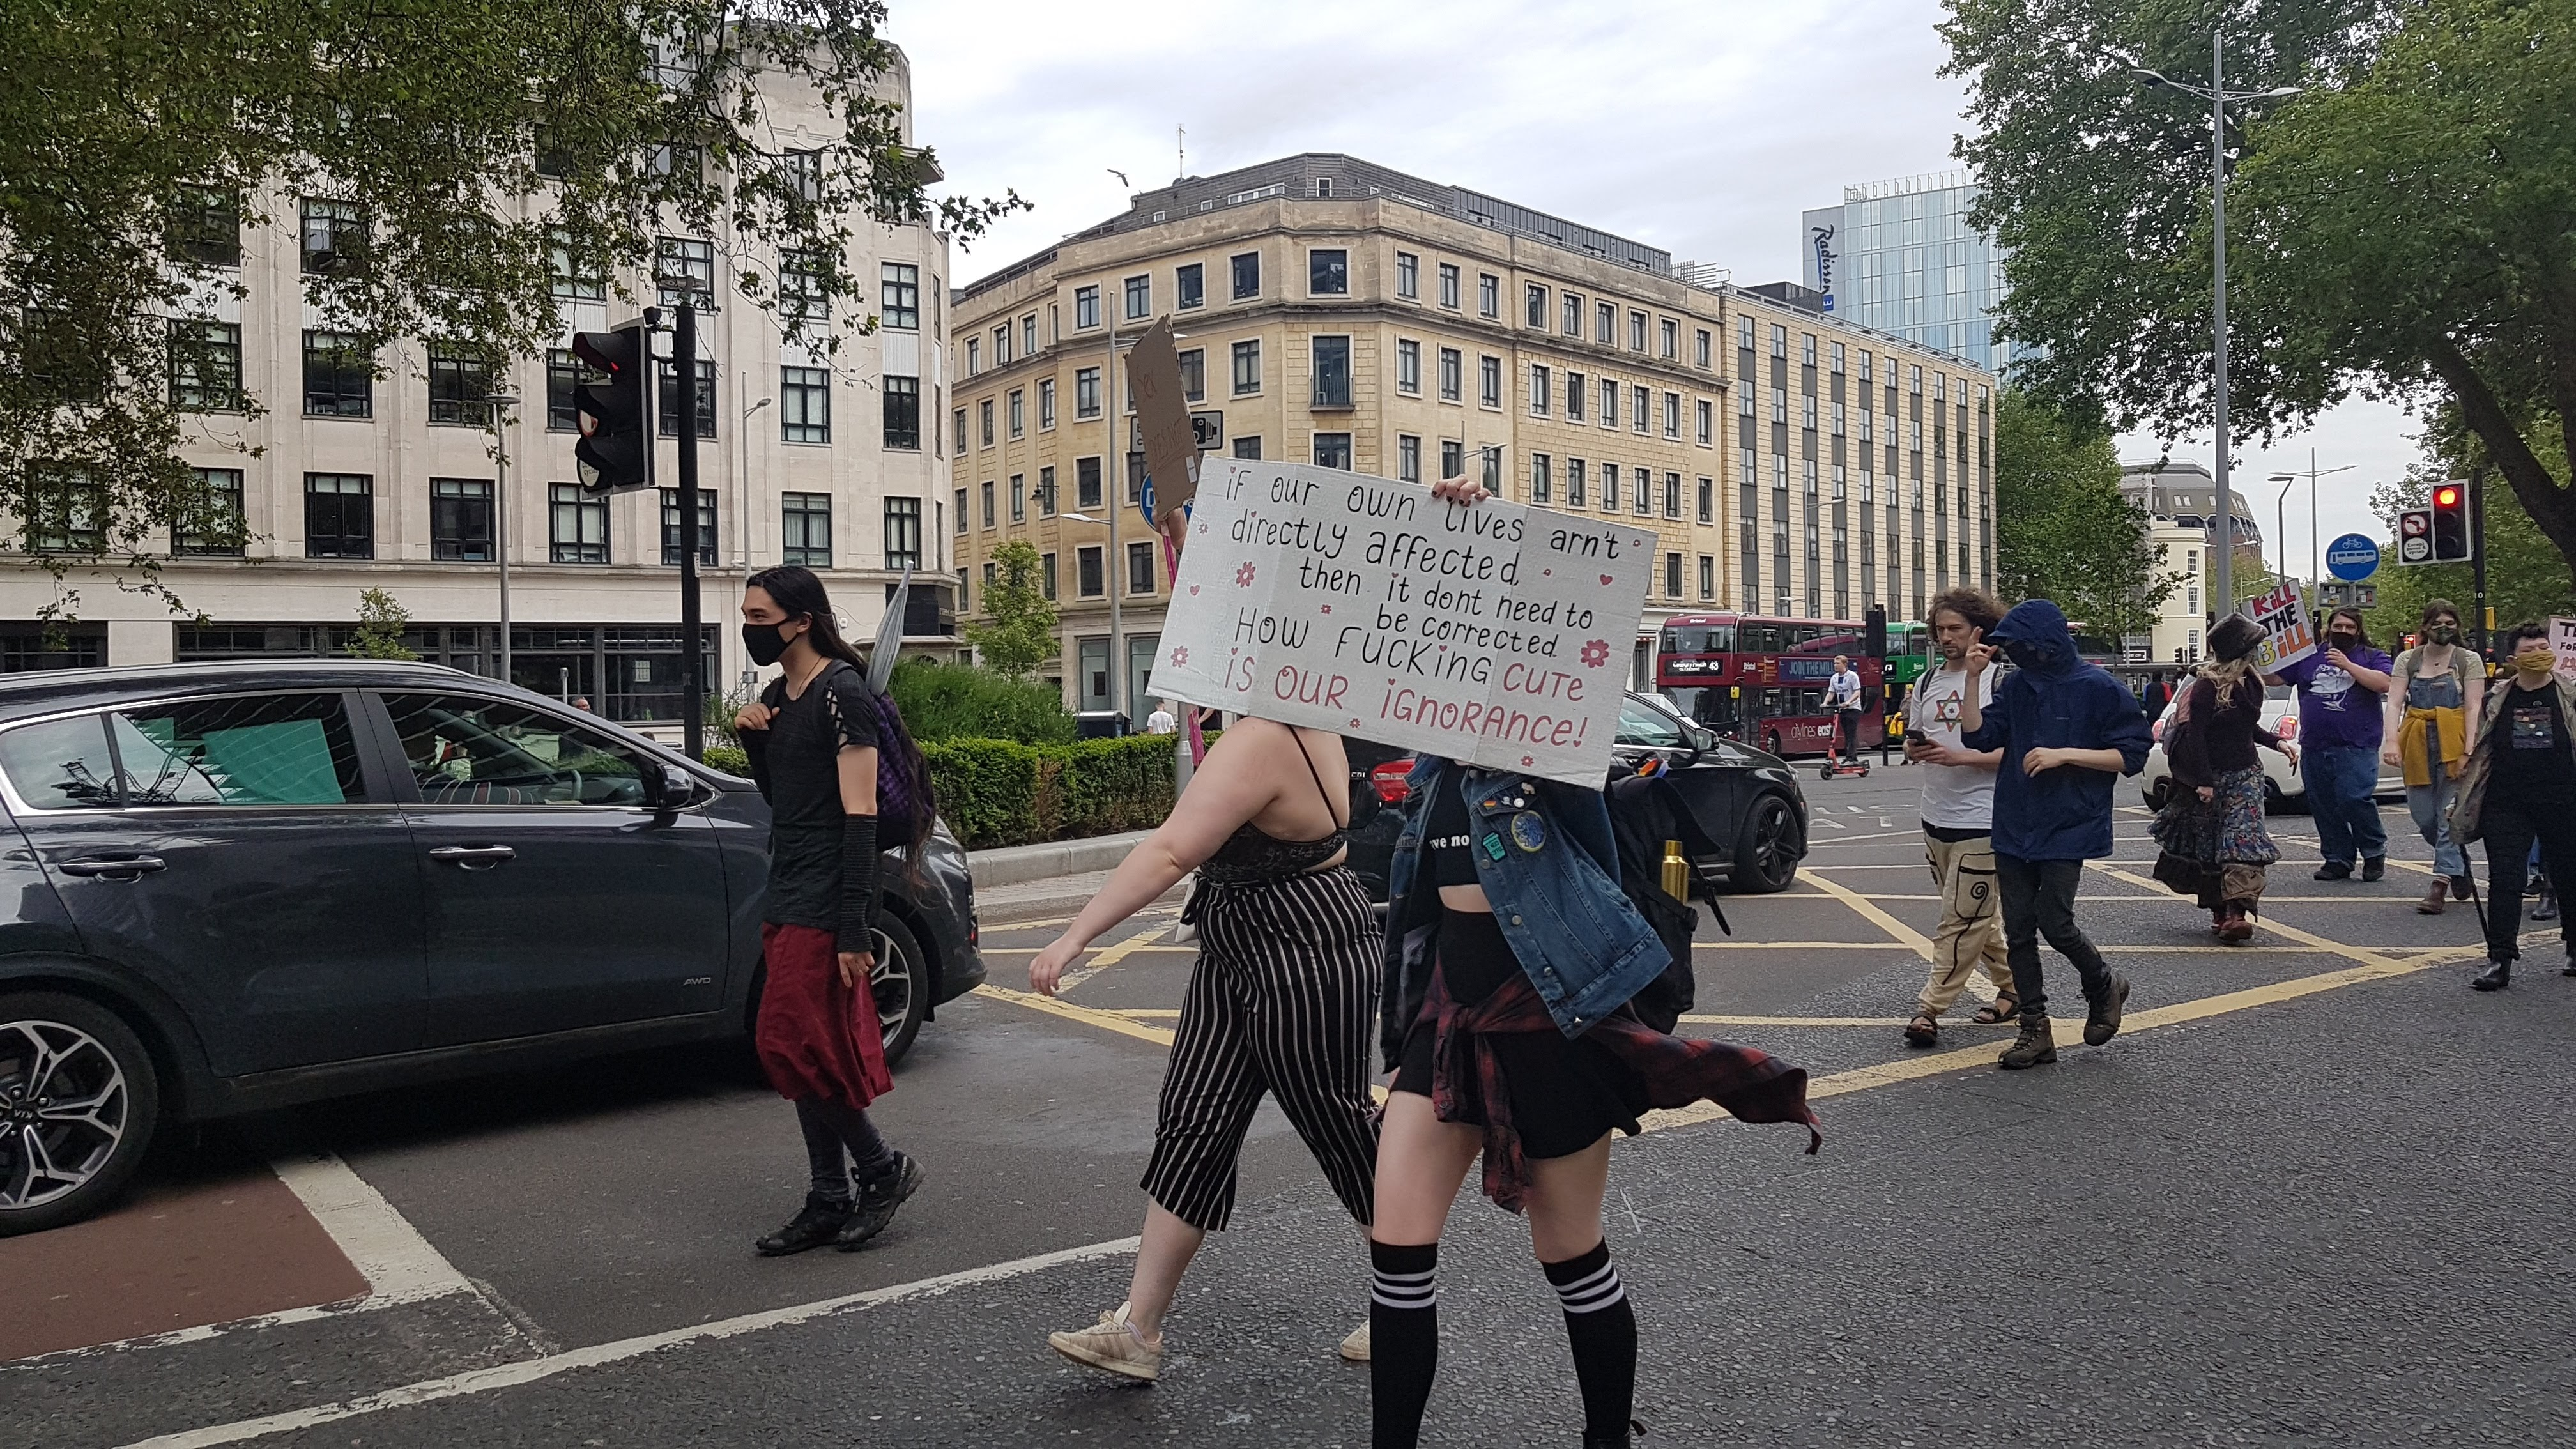 """Protester holds a placard reading """"if our own live aren't strictly affected then it don't need to be corrected. How fucking cute is our ignorance."""""""